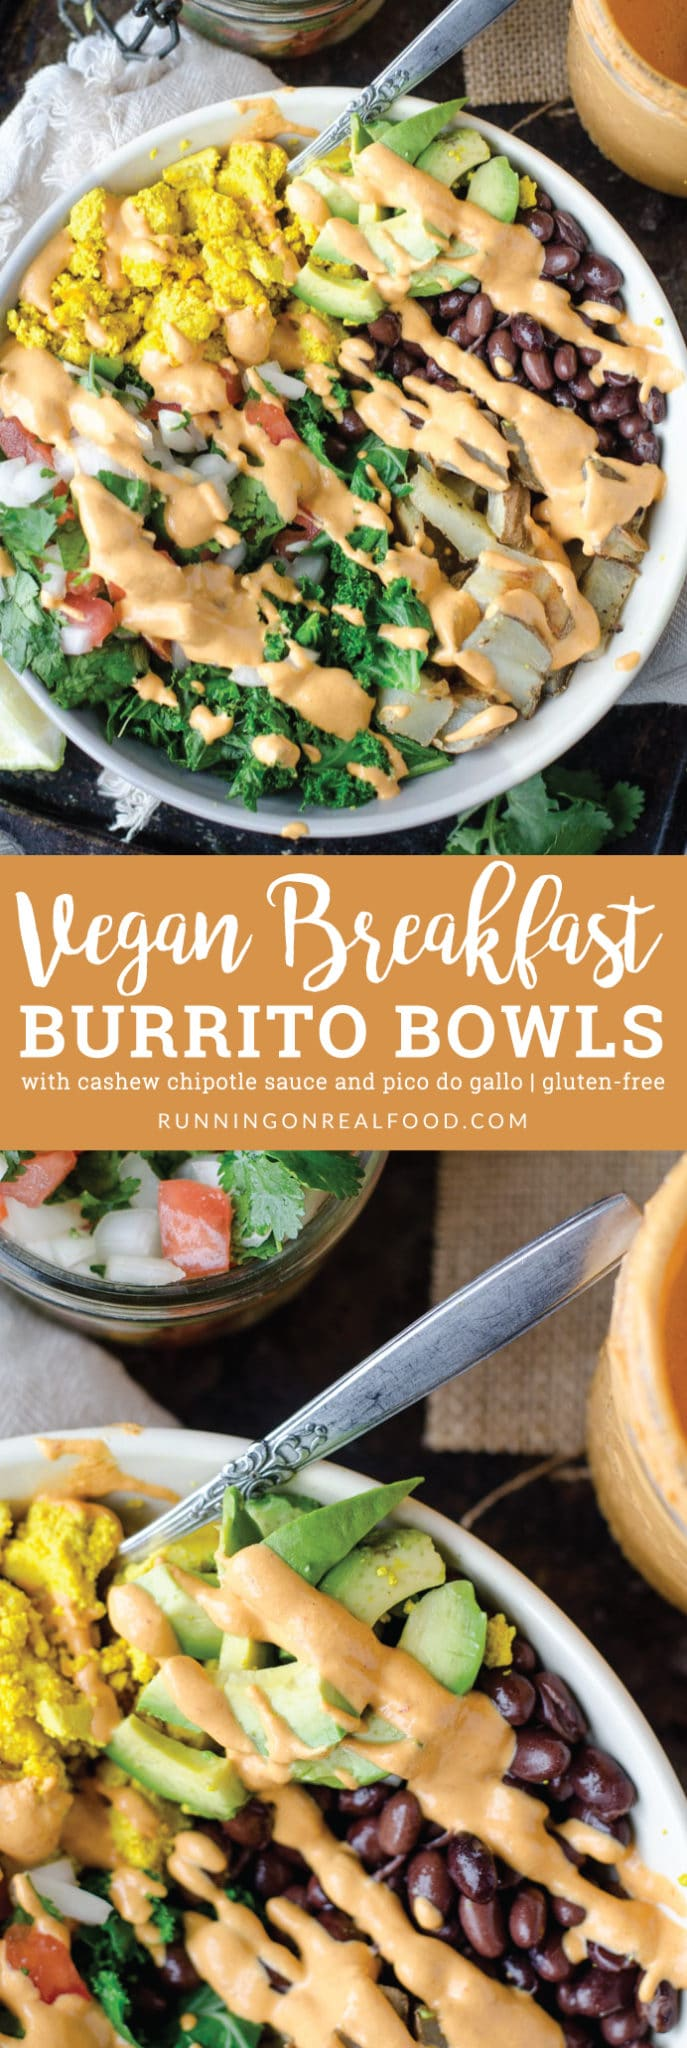 This vegan breakfast burrito bowl with cashew chipotle sauce features all the goods: avocado, peppers, black beans, potatoes, pico de gallo and tofu scramble. Gluten-free, oil-free.